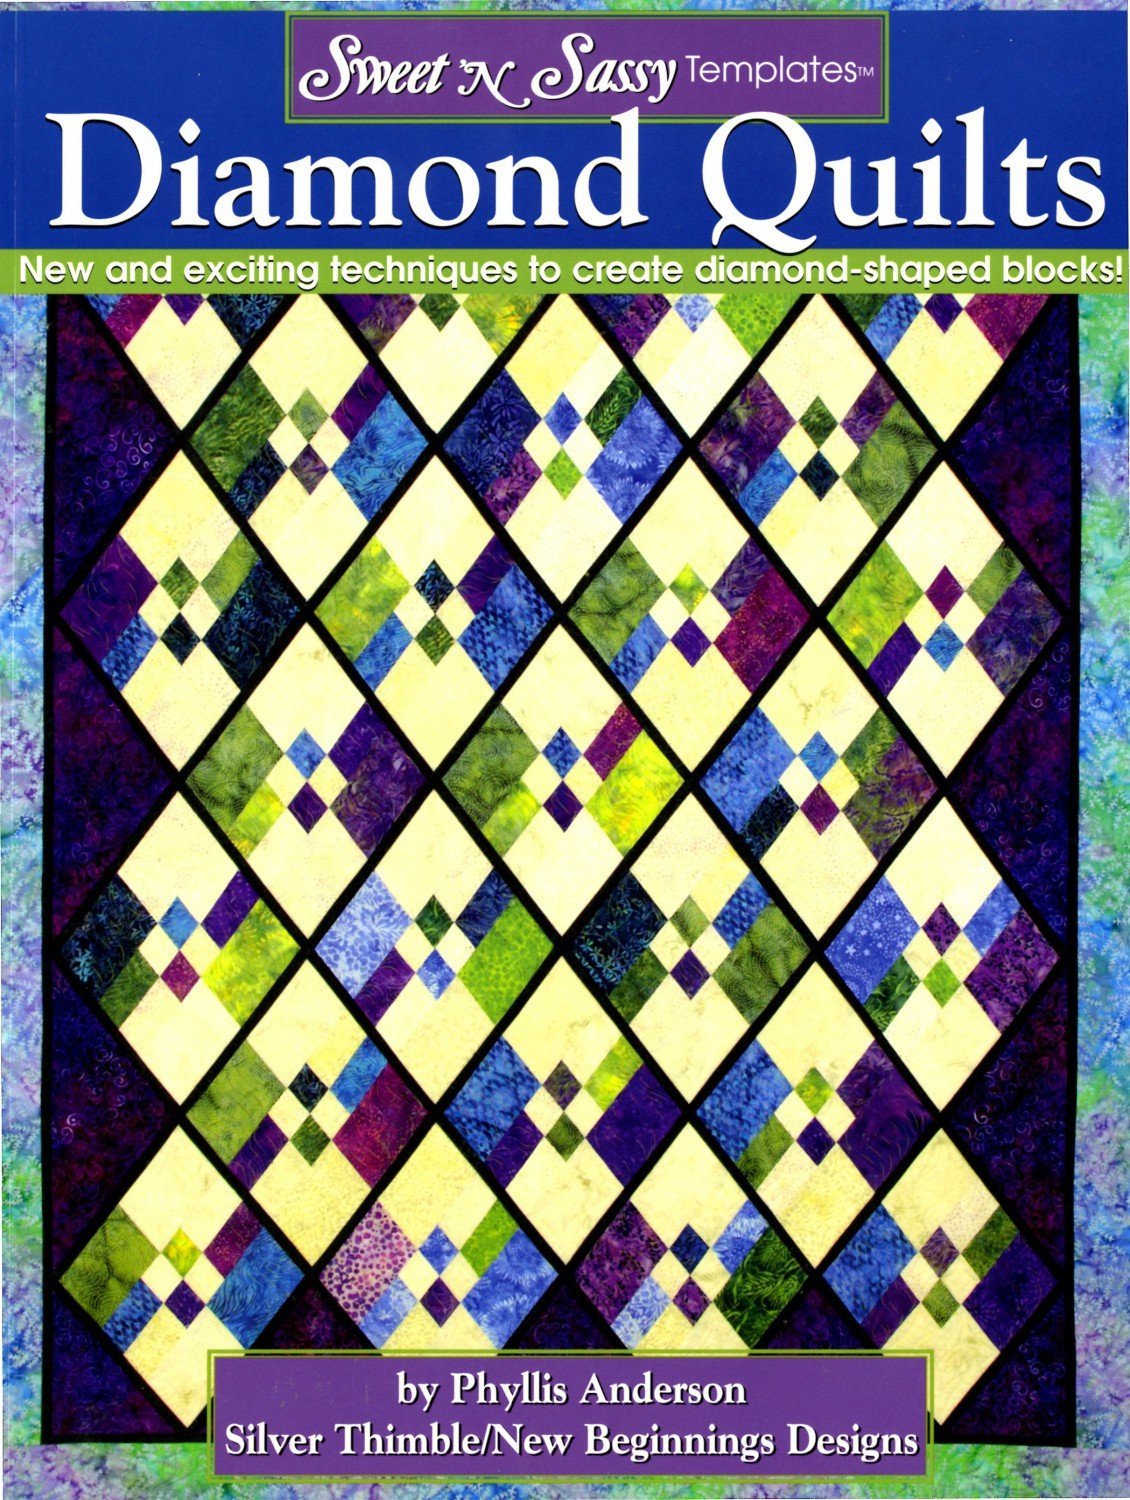 Diamond Quilts - L11274 - MAY BE RESTOCKED UPON REQUEST